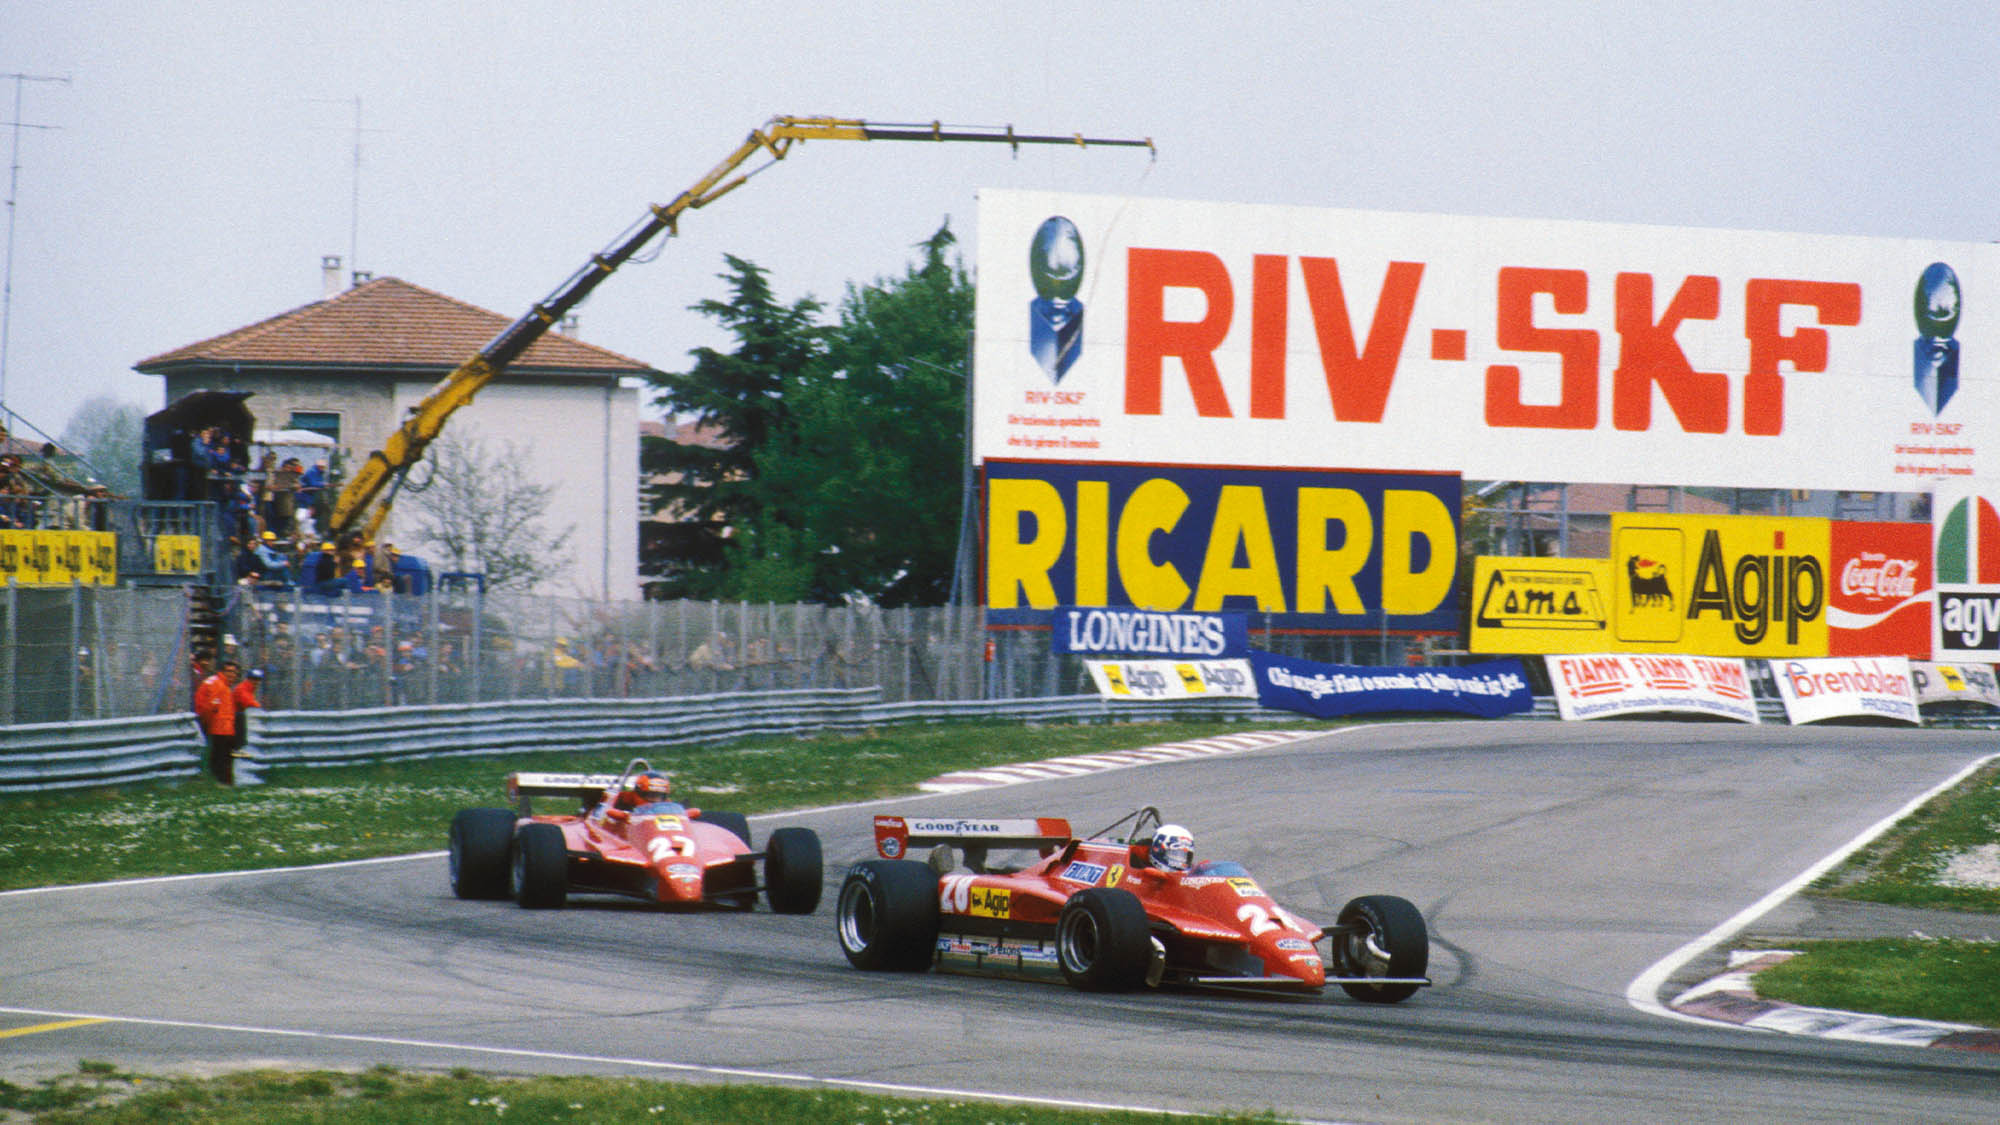 Didier Pironi and GIlles Villeneuve at Imola during the 1982 San Marino Grand Prix